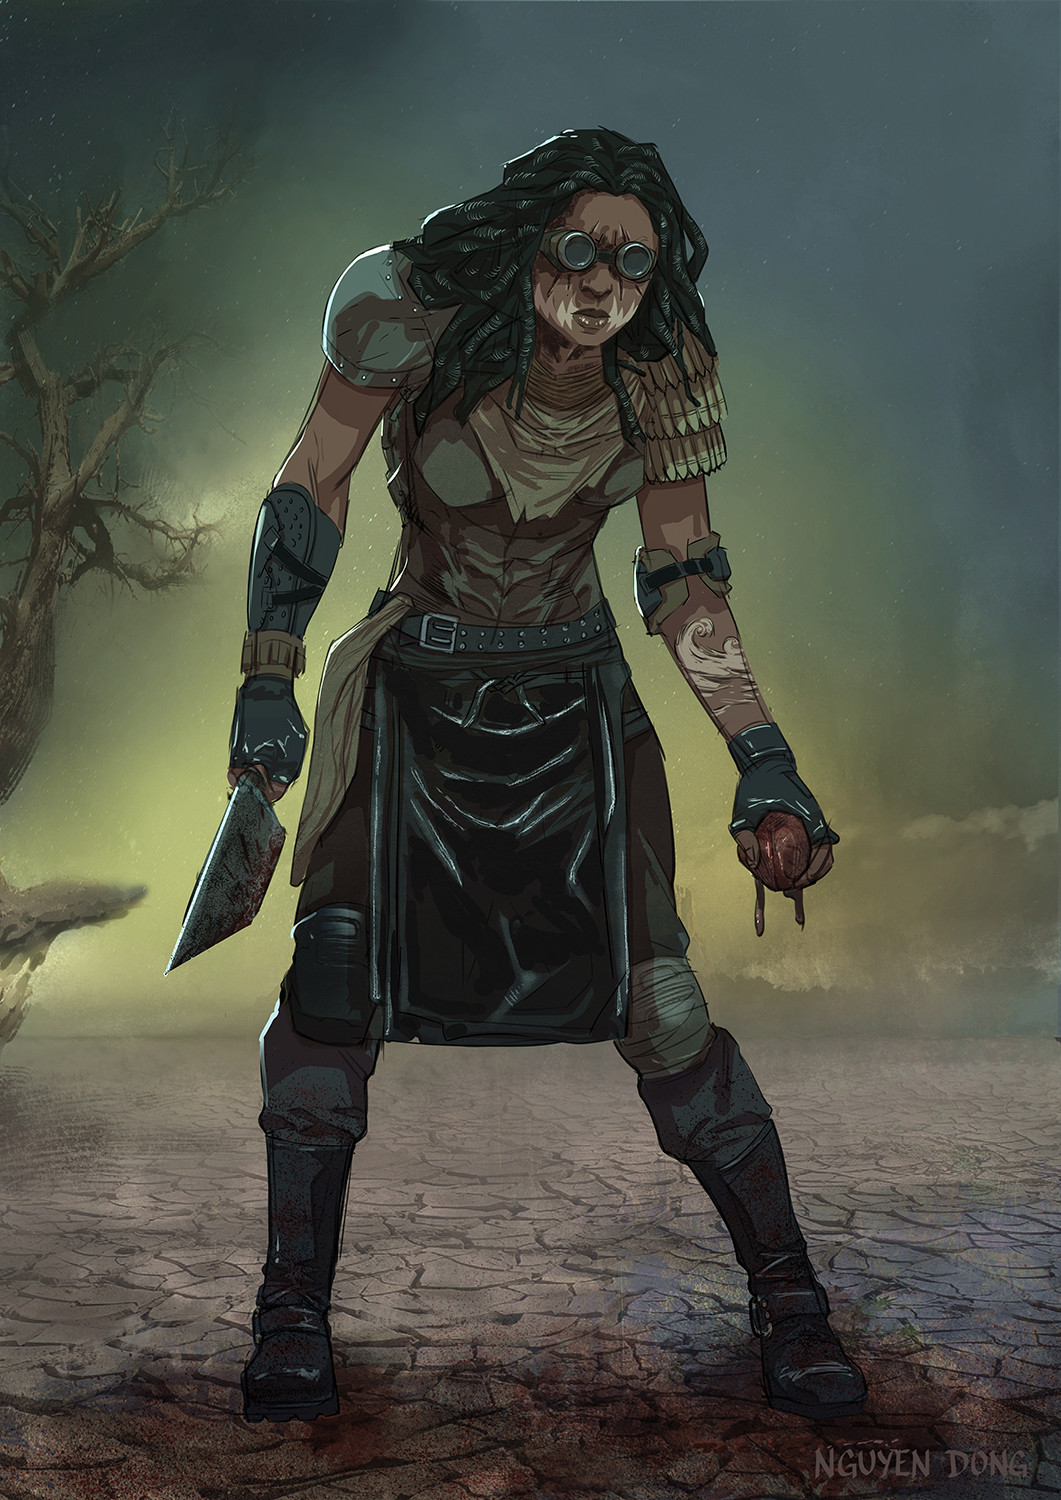 Witch for Hansel and Gretel in a Mad Max style